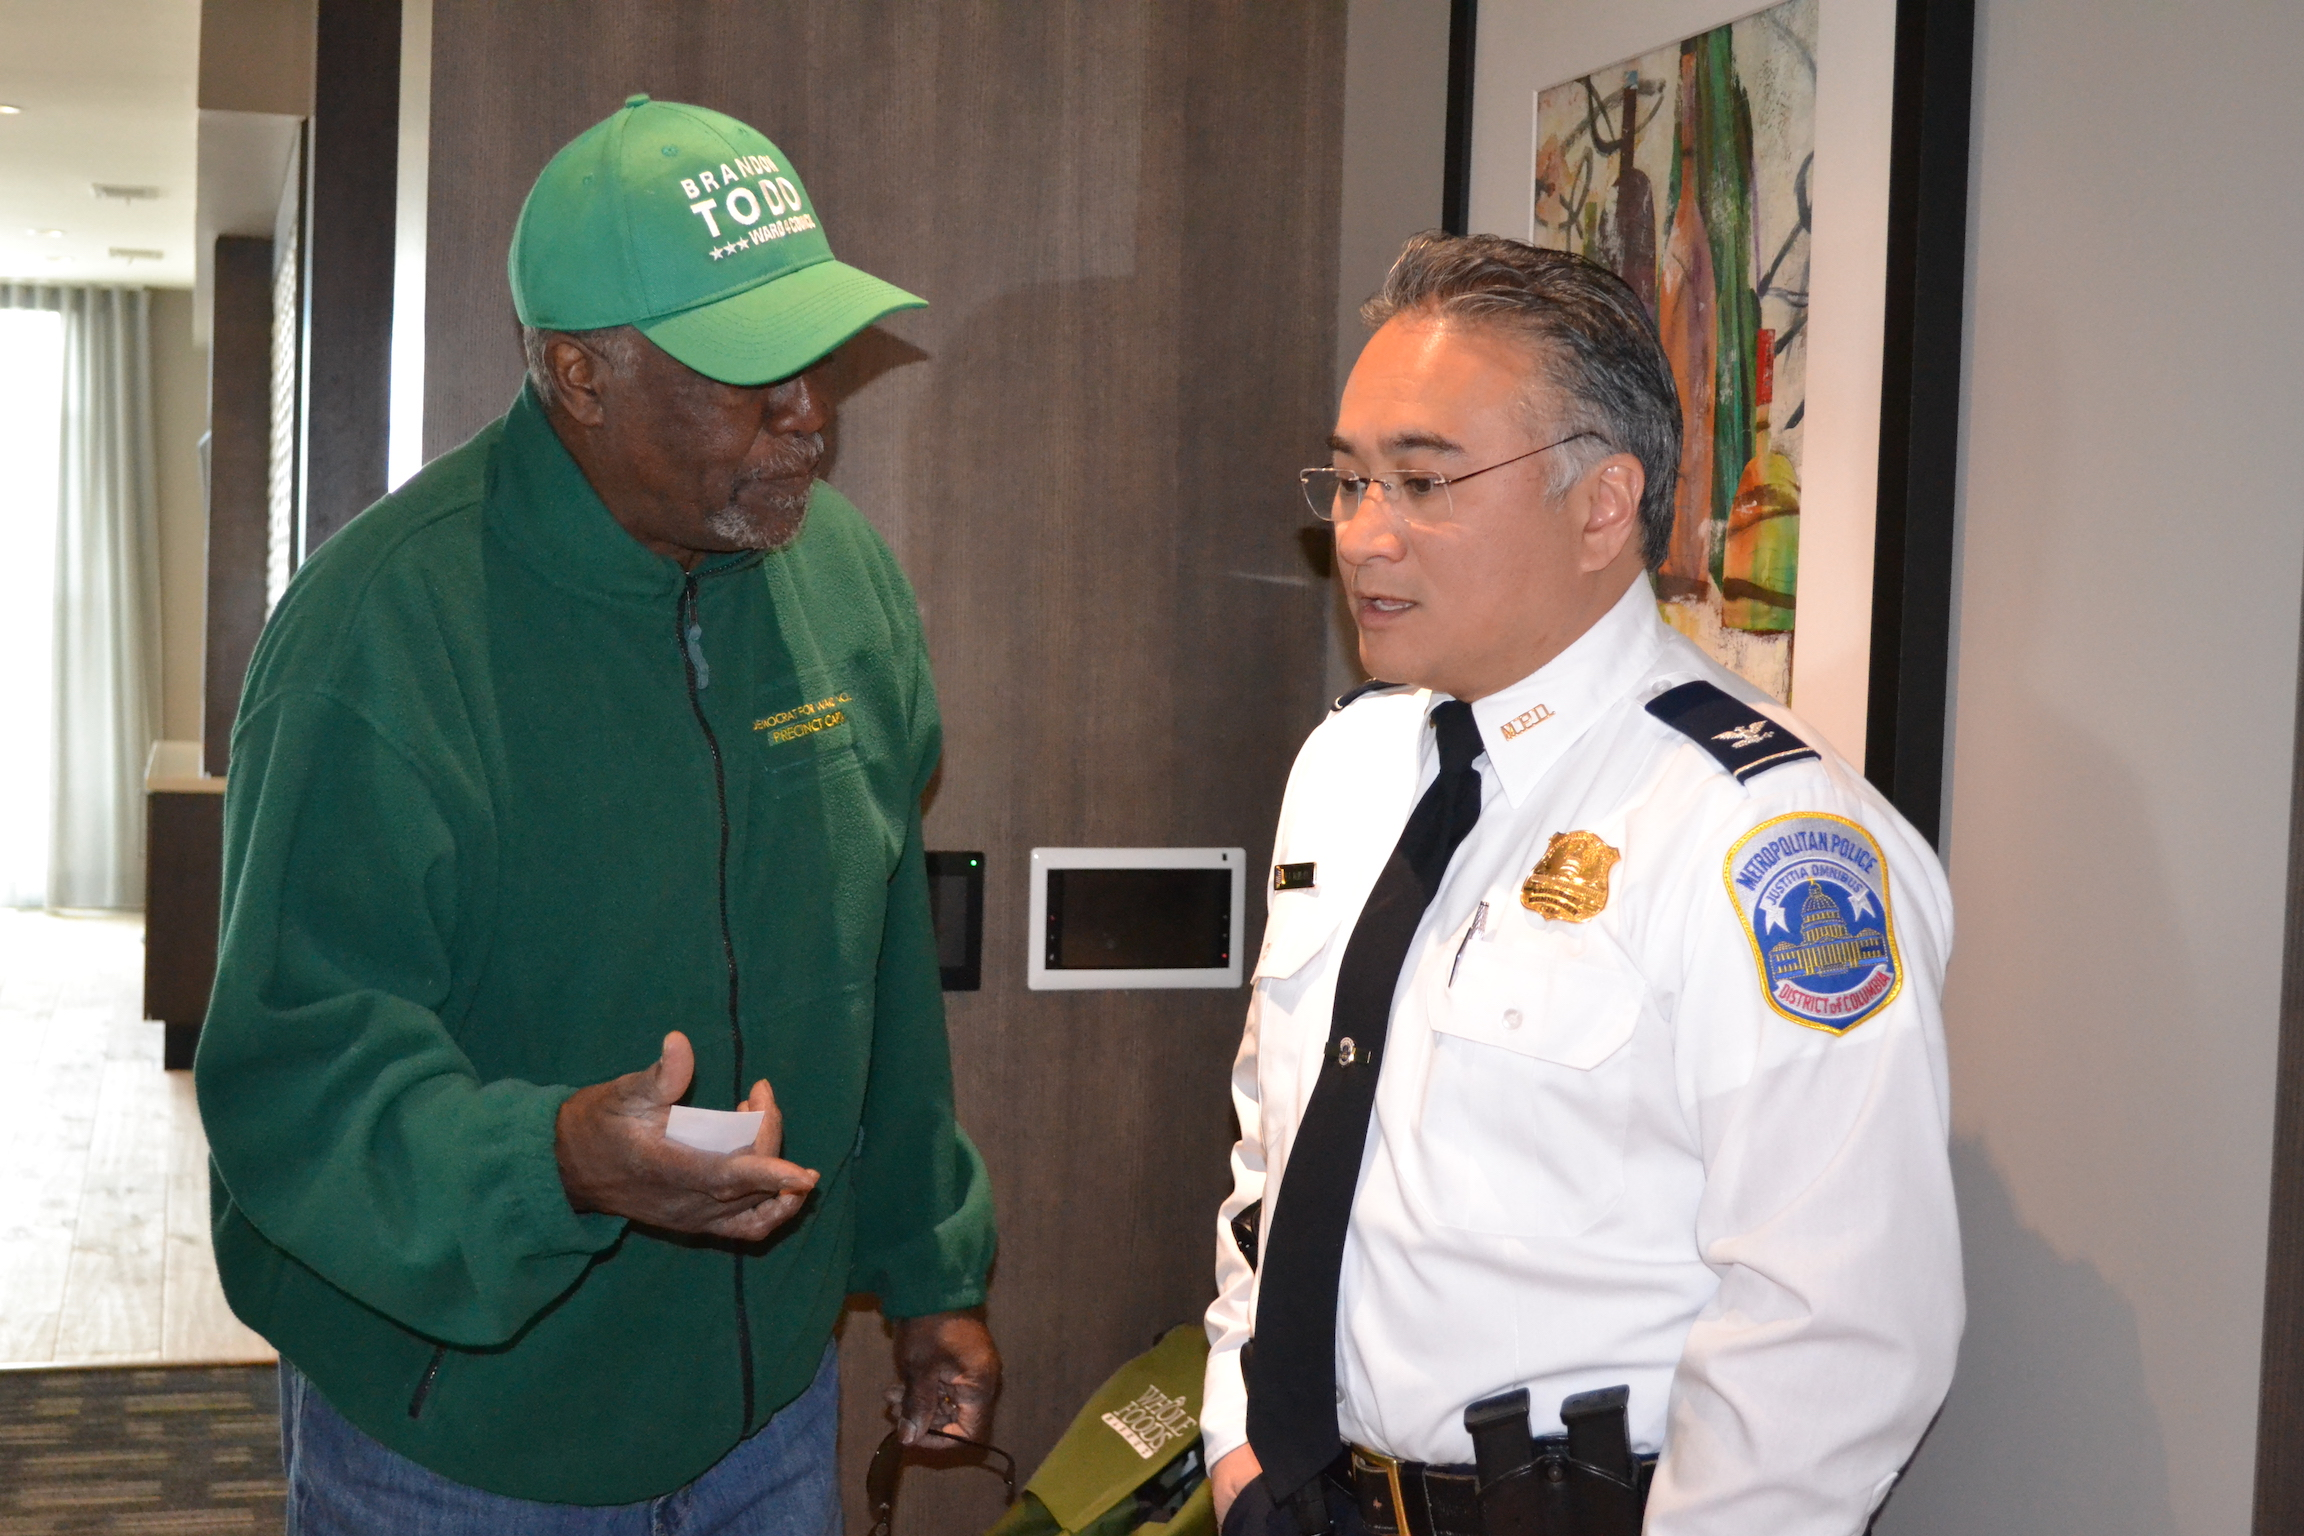 4D Commander Wilfredo Manlapaz speaking with a resident (decked out in Todd green).